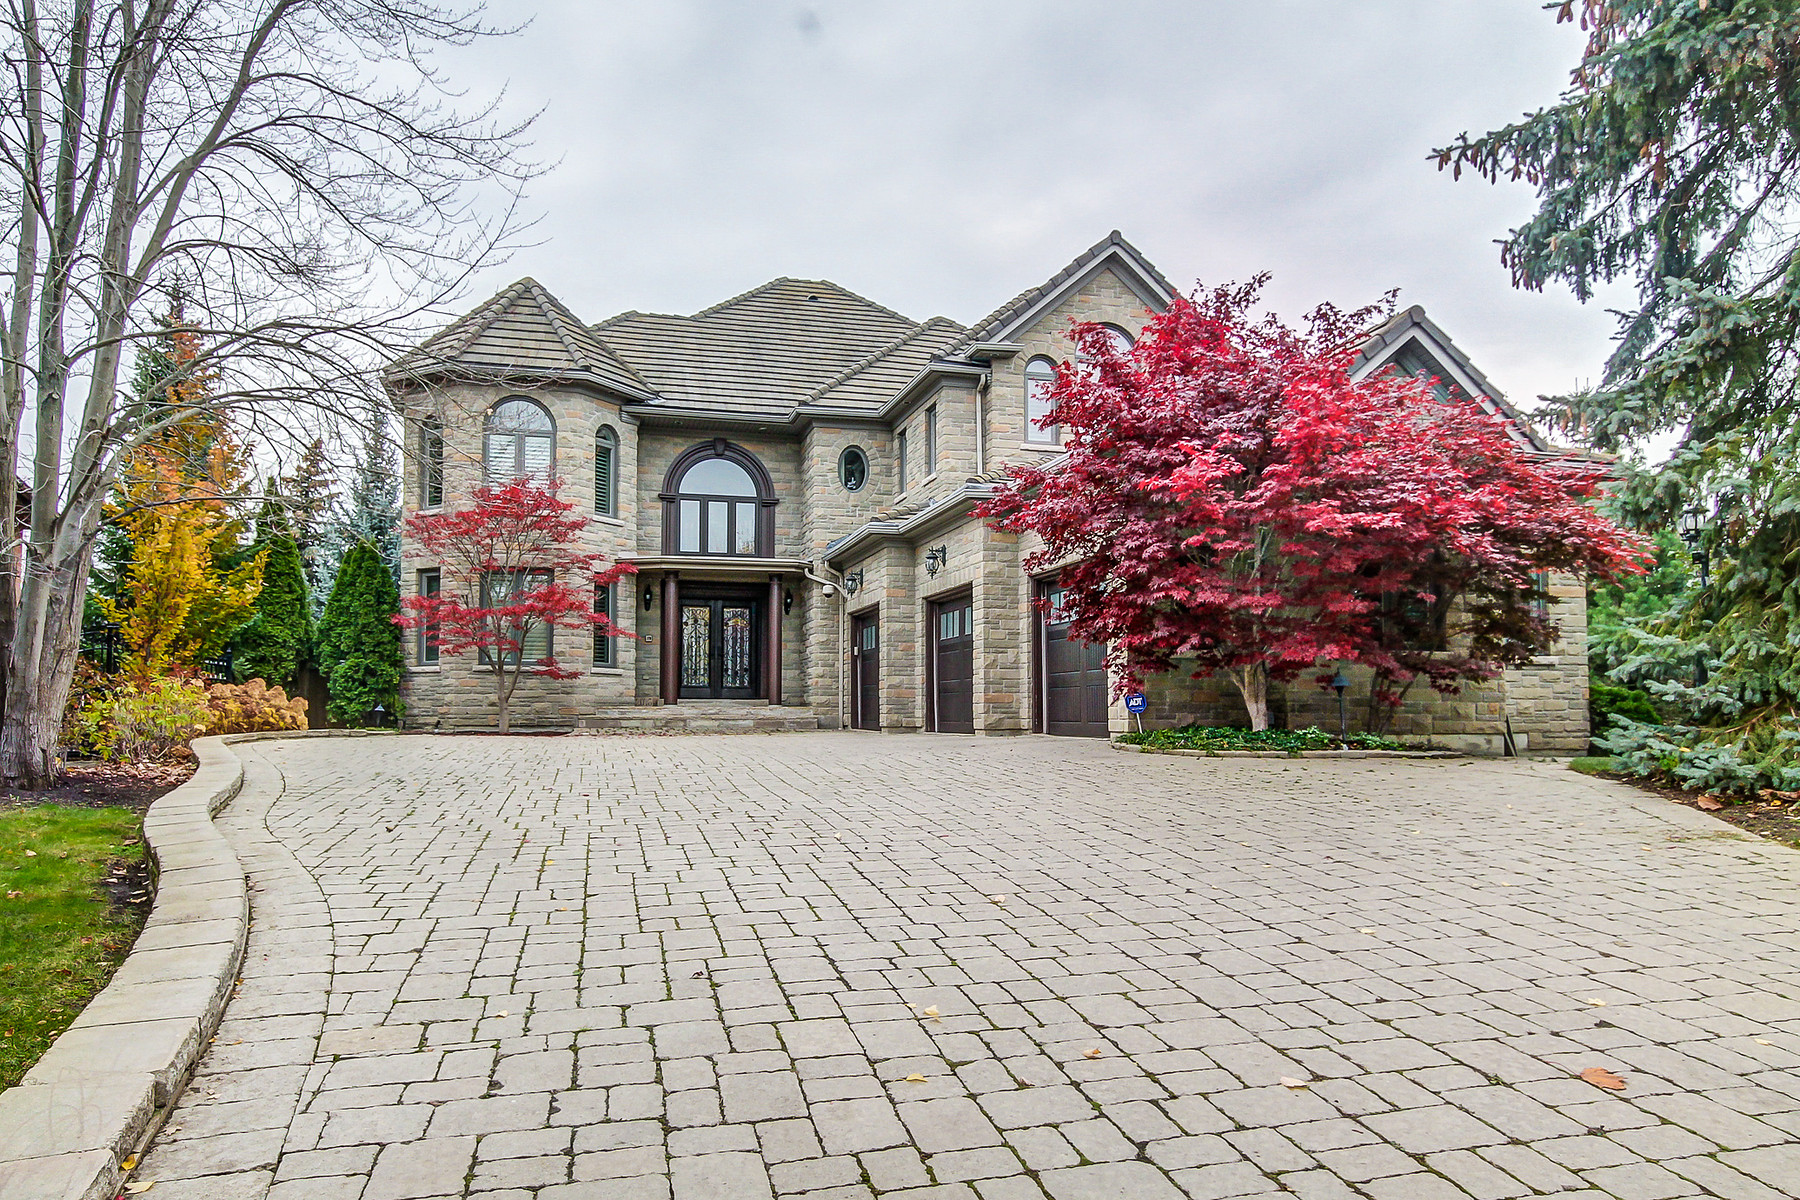 Single Family Home for Sale at Spectacular and elegant home 2046 Eckland Court Mississauga, Ontario L5L 5W5 Canada